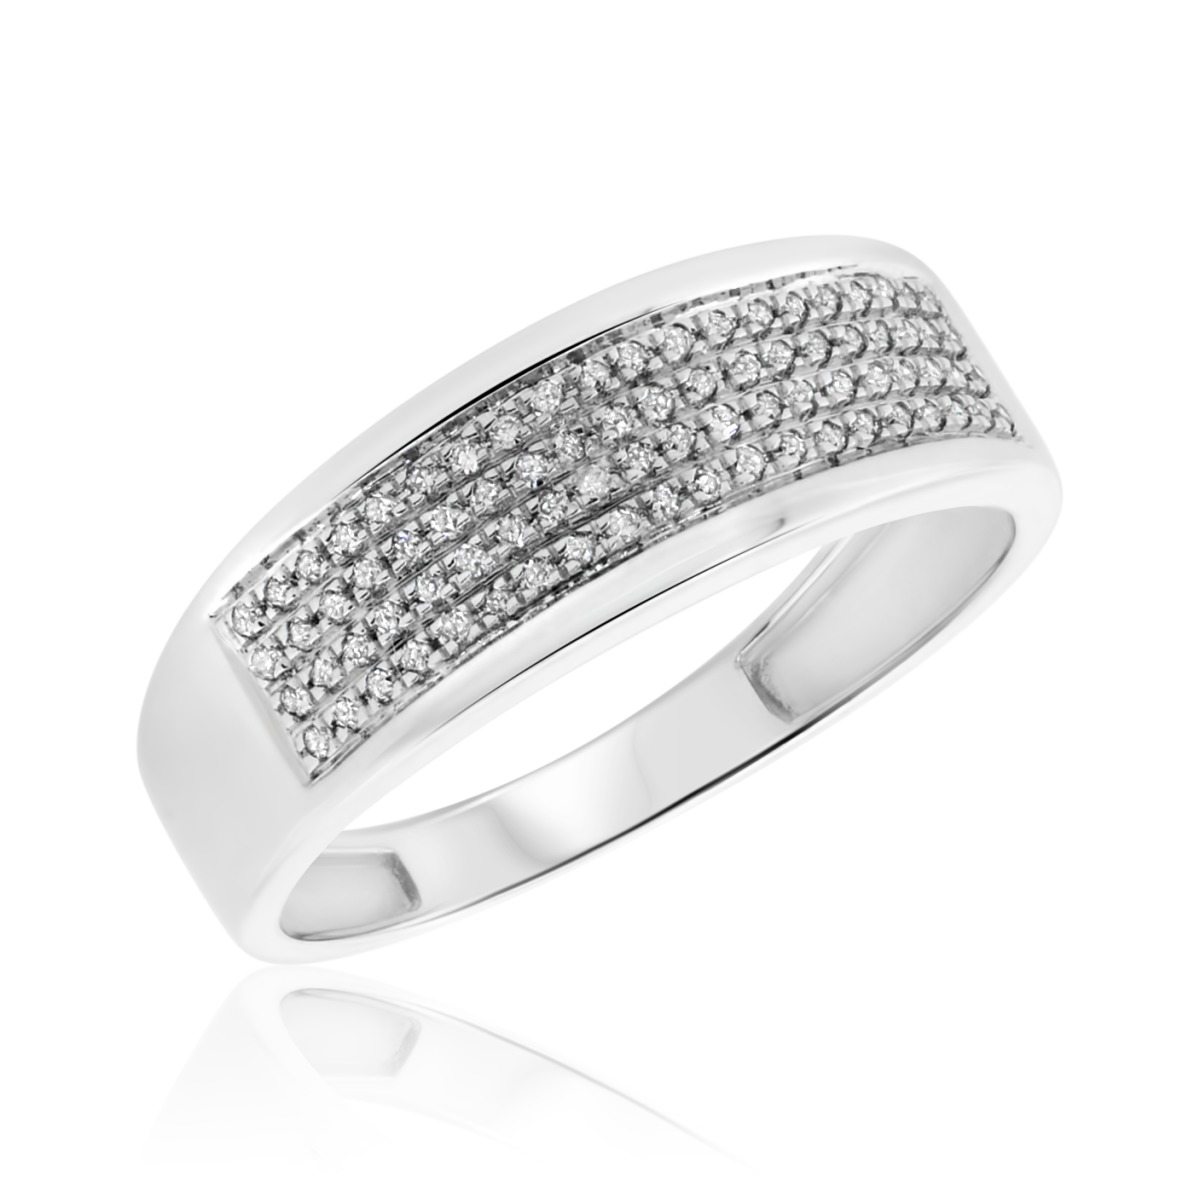 1/6 CT. T.W. Diamond Ladies Wedding Band 14K White Gold